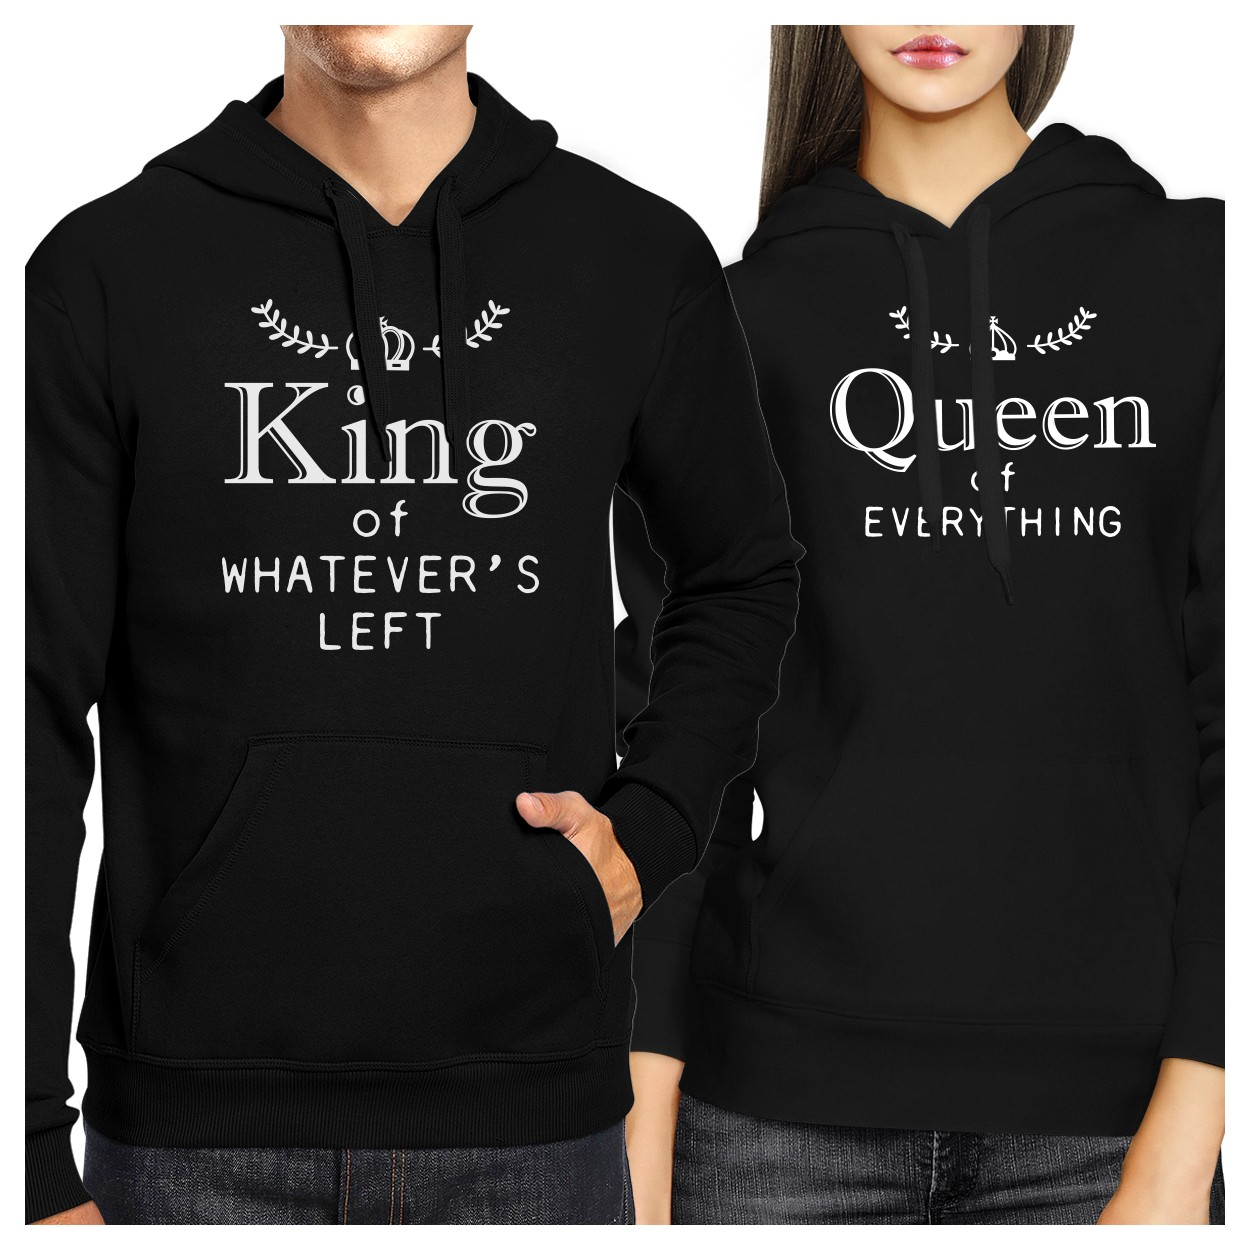 King And Queen Of Everything Couple Hoodies Anniversary Gifts Ideas